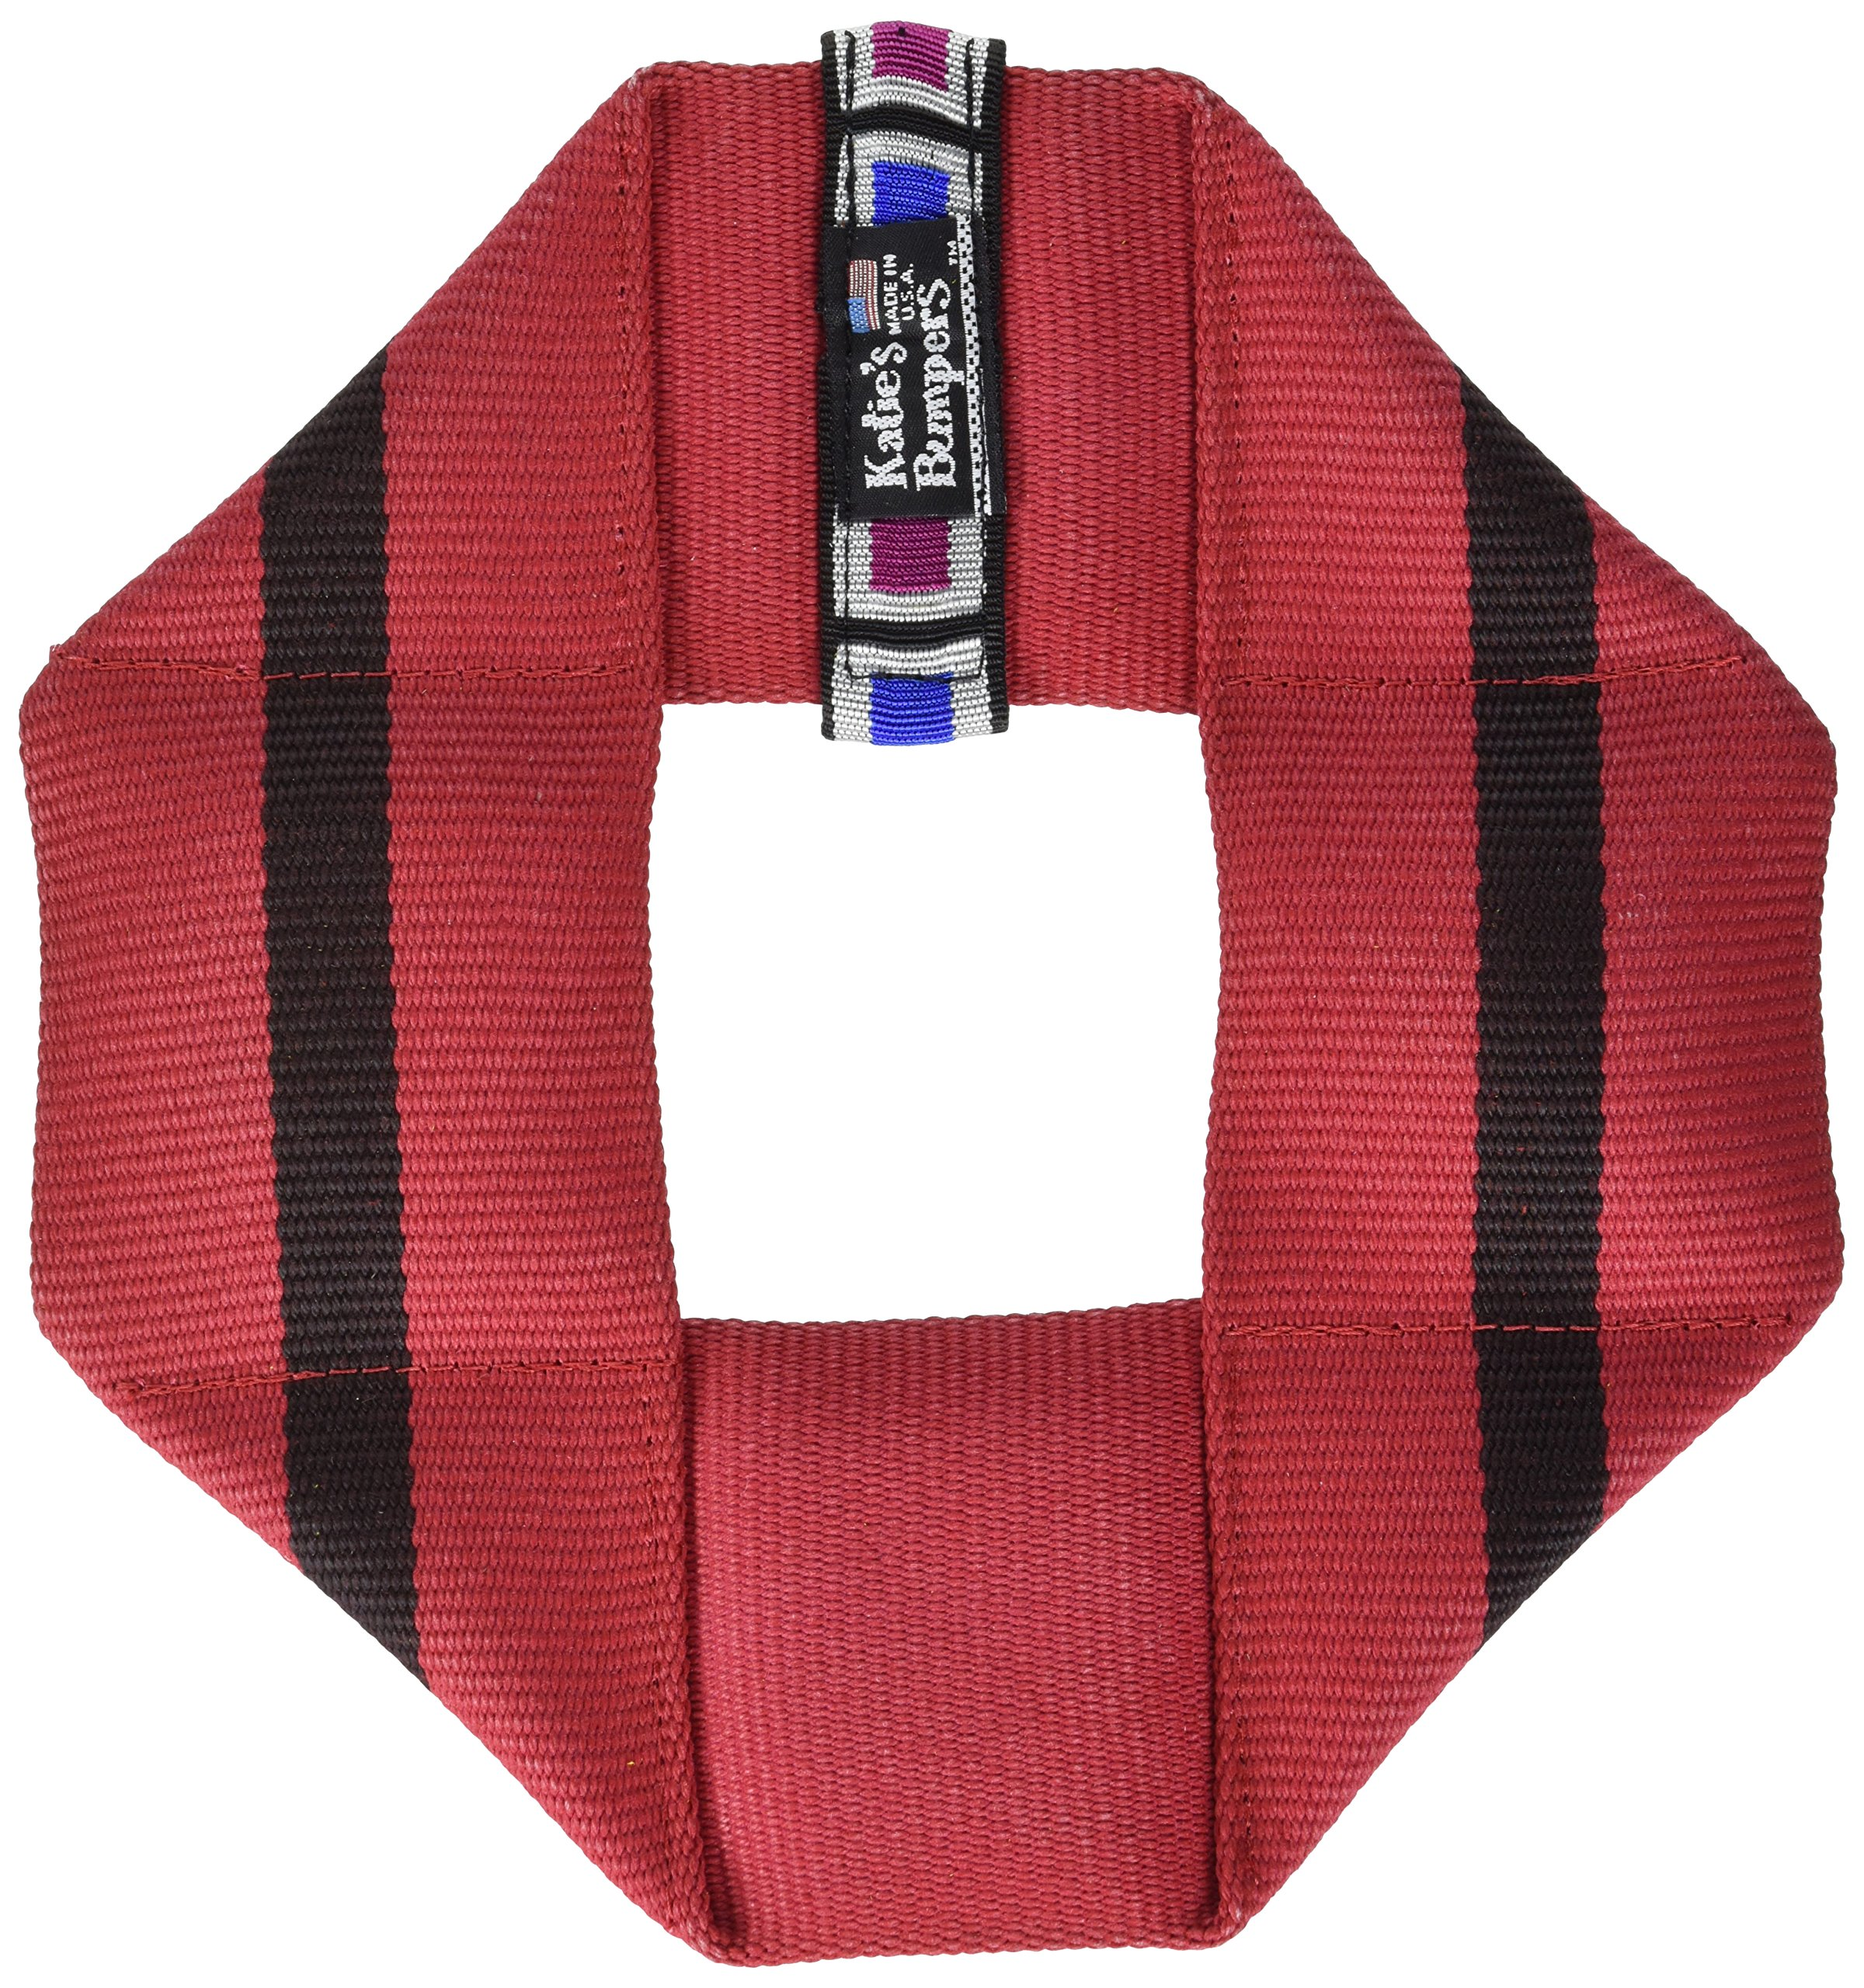 Katie's Bumpers Frequent Flyer Square Firehouse Dog Toy, Assorted